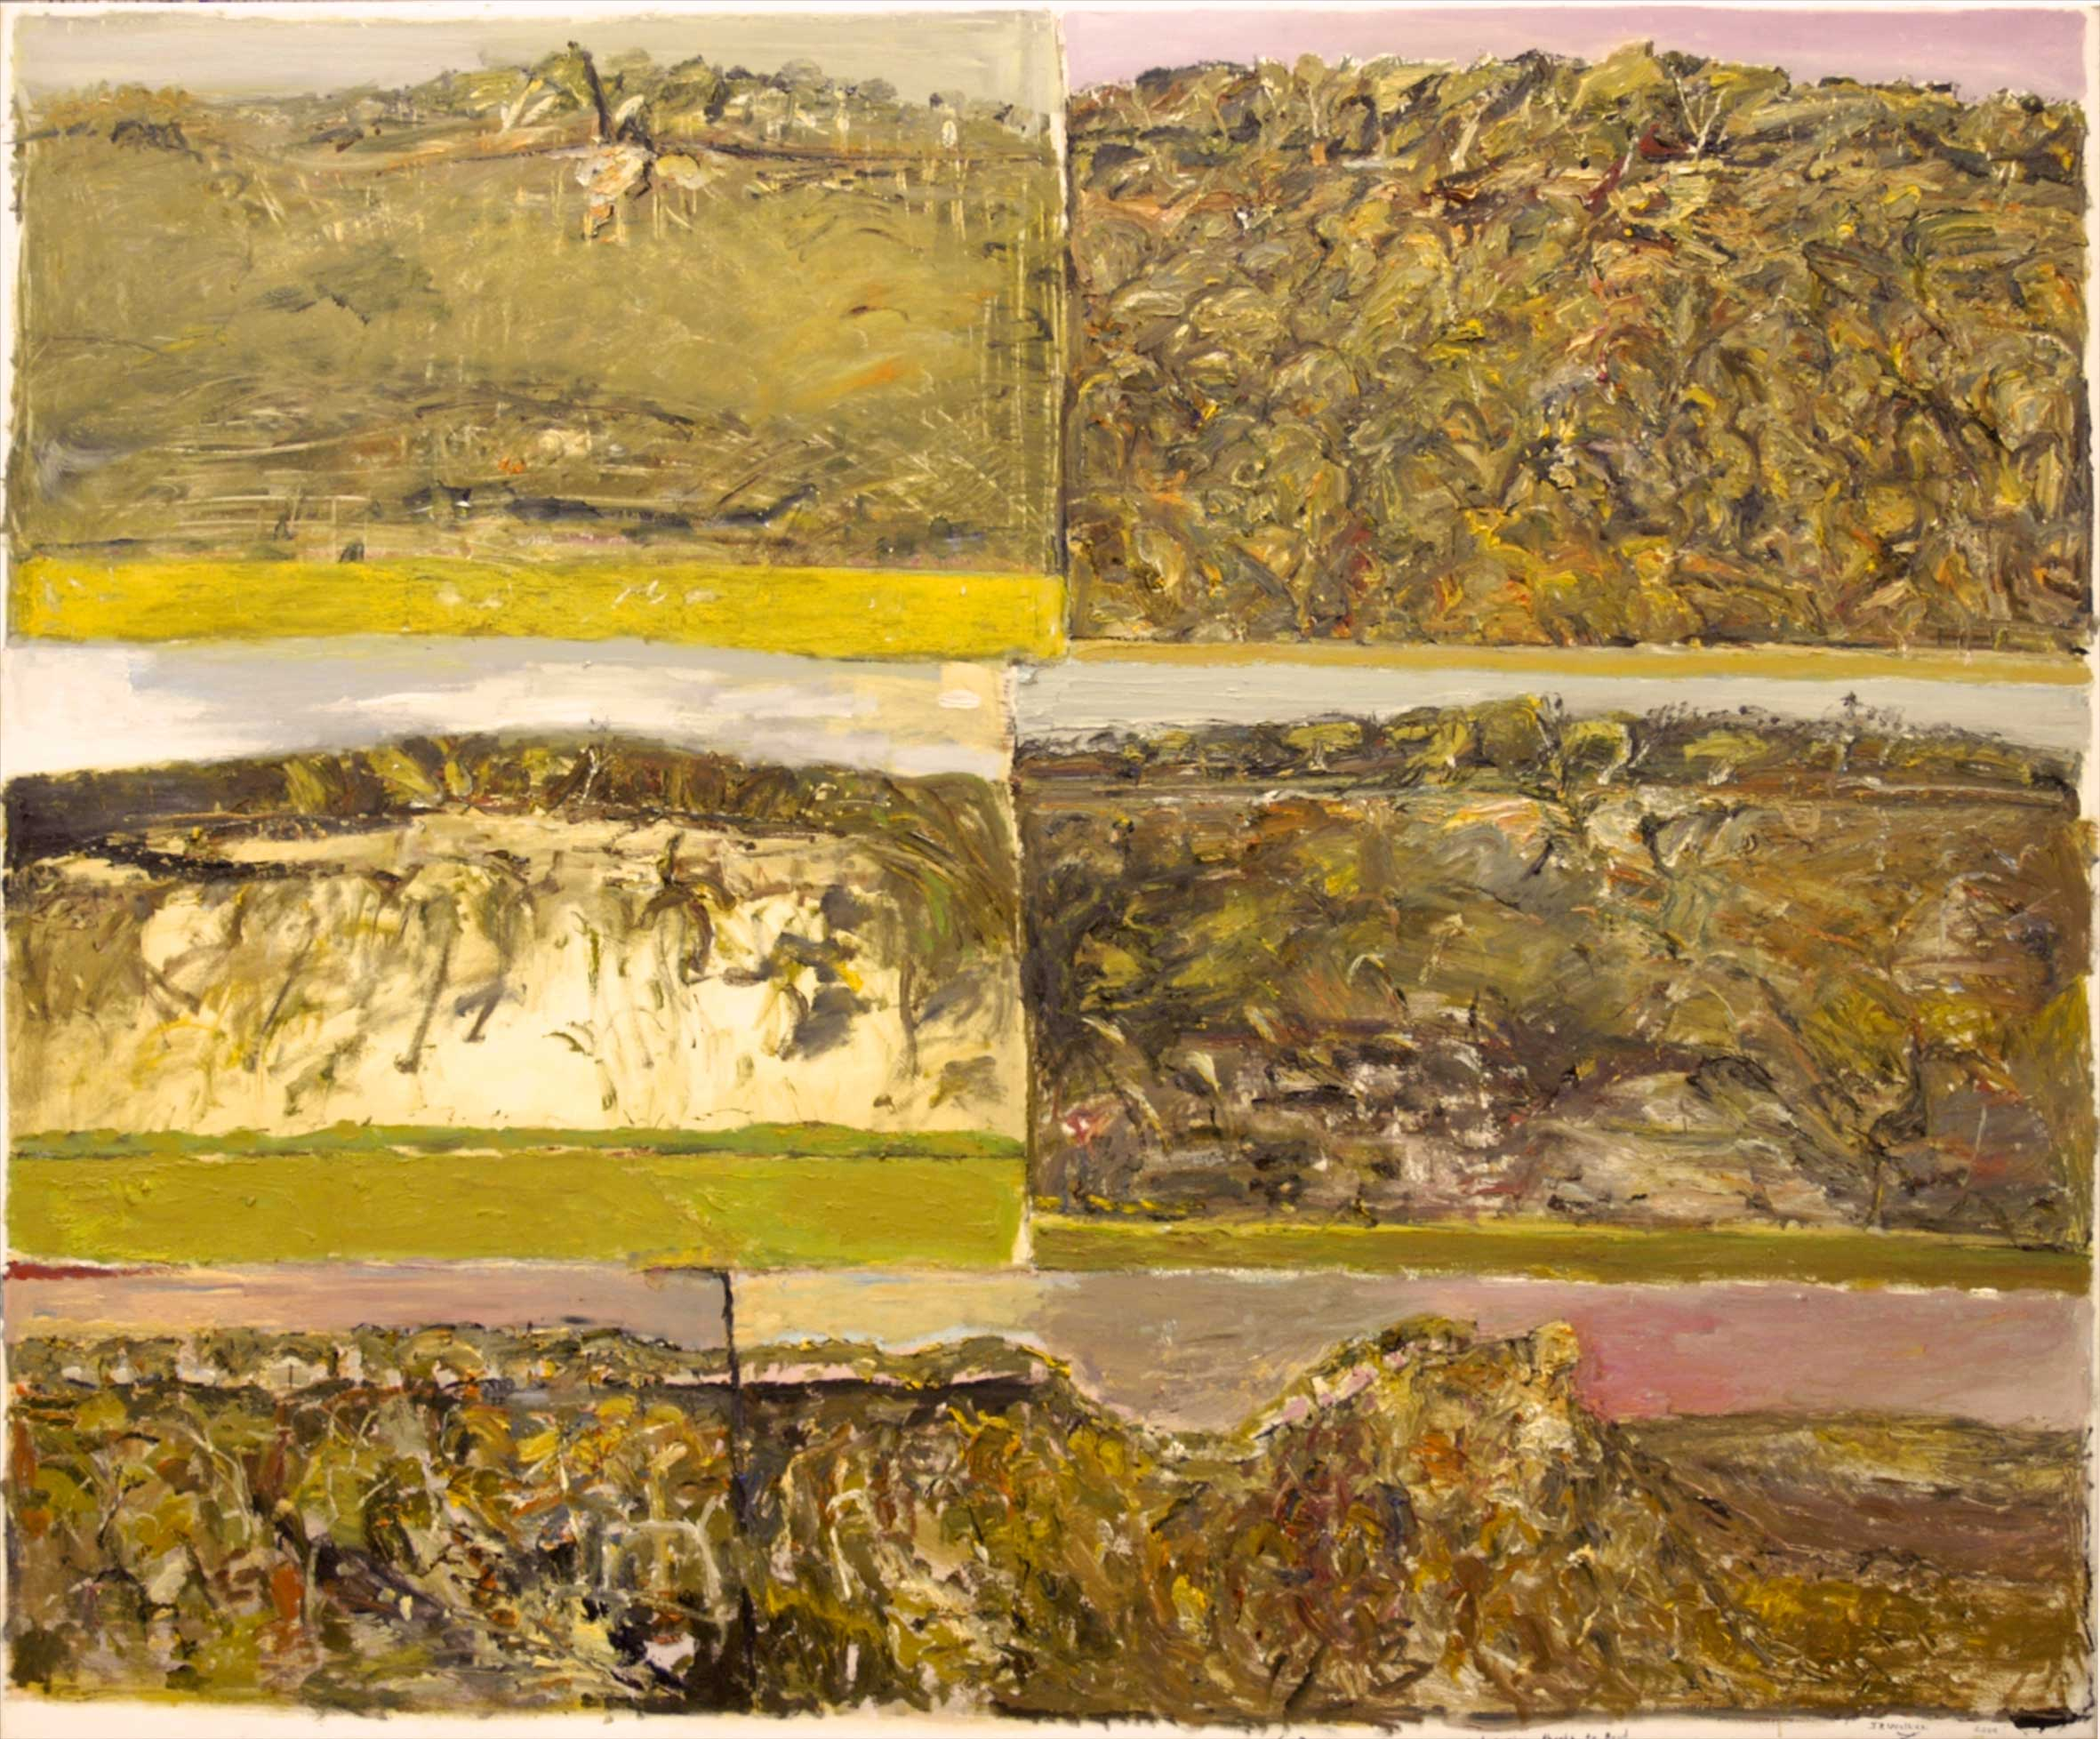 John R Walker , Six Days at Bundanon and I Give Thanks to Boyd , 2001, oil on canvas, 183 x 221 cm.Image courtesy Utopia Gallery, Sydney © the artist.